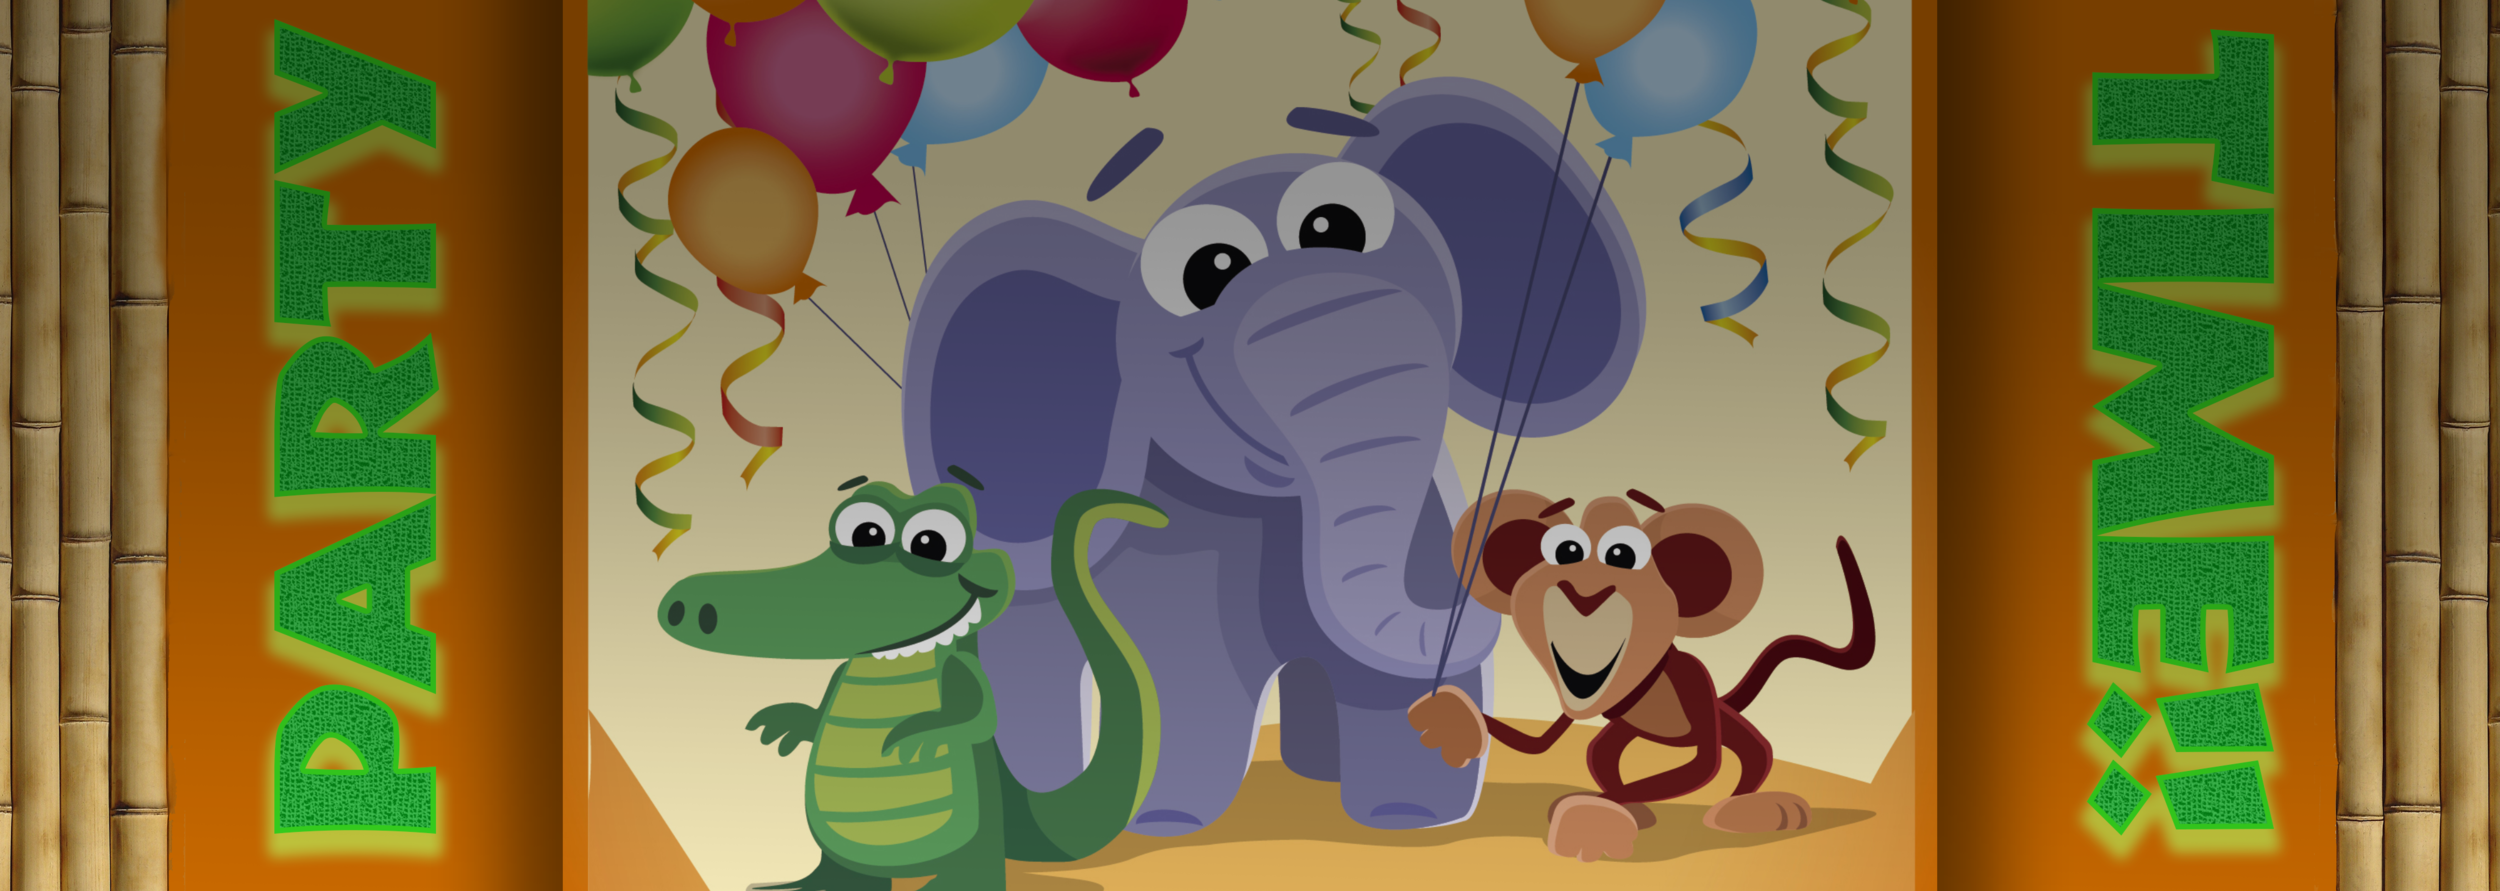 Birthday party wild animals.png